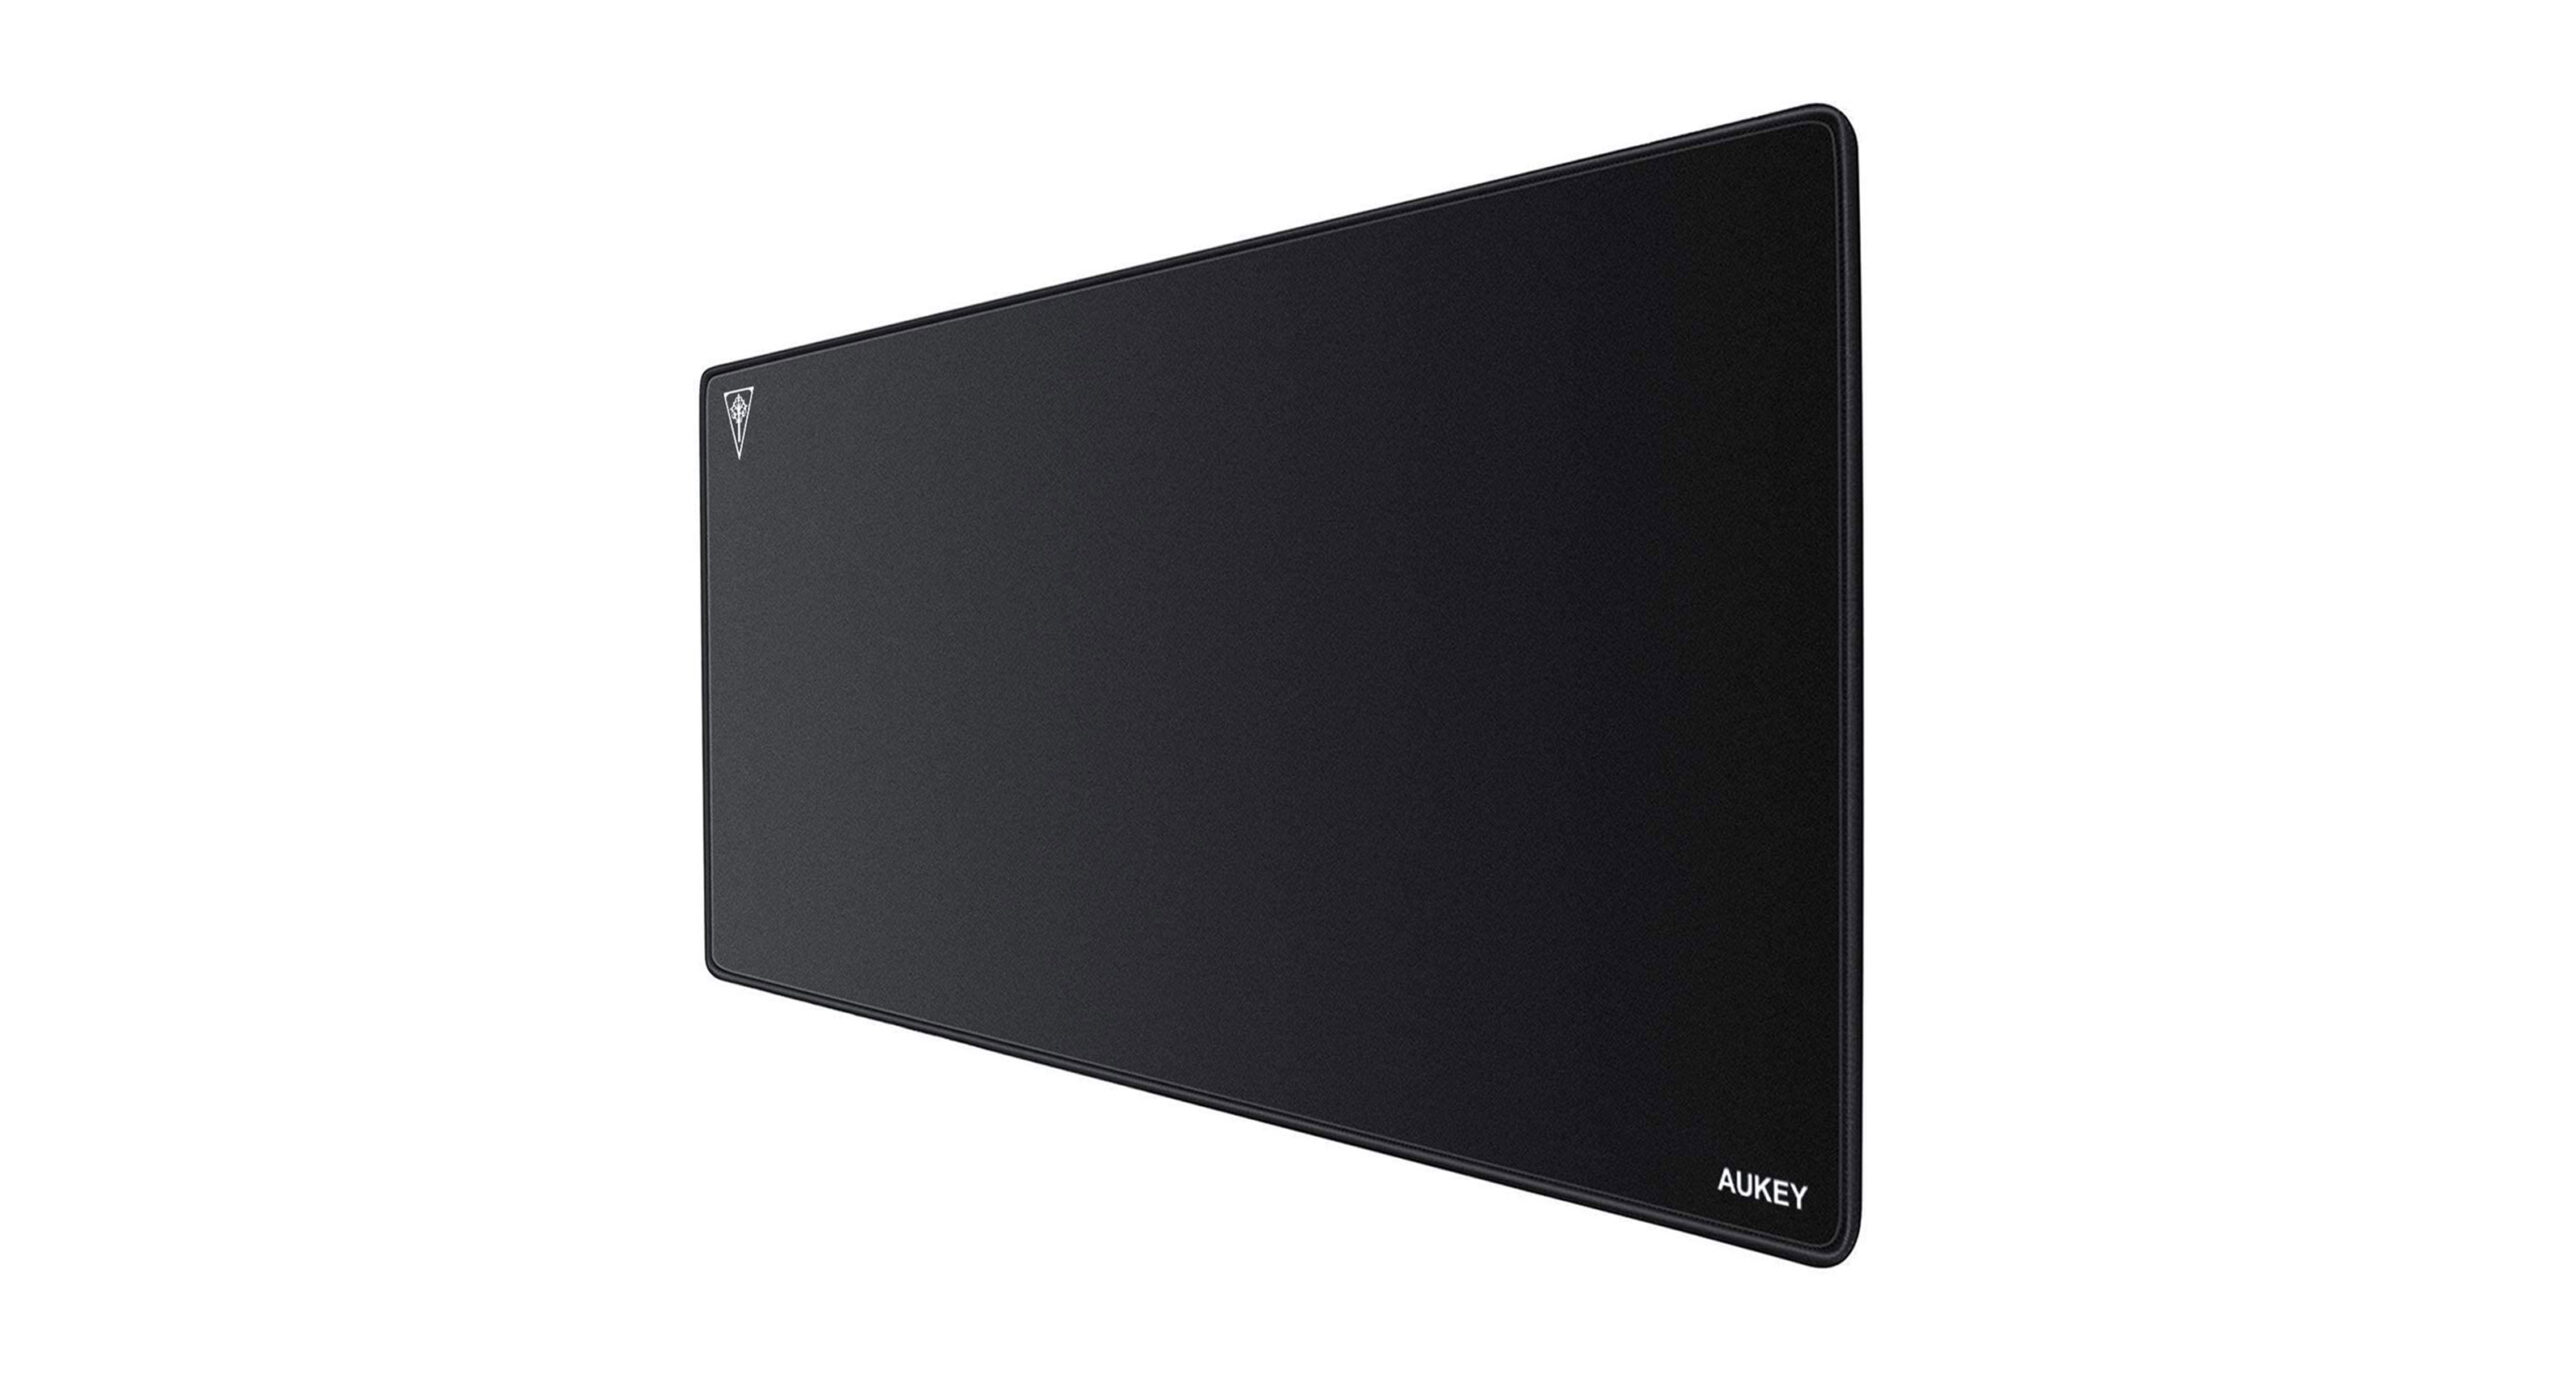 Aukey gaming desk mat